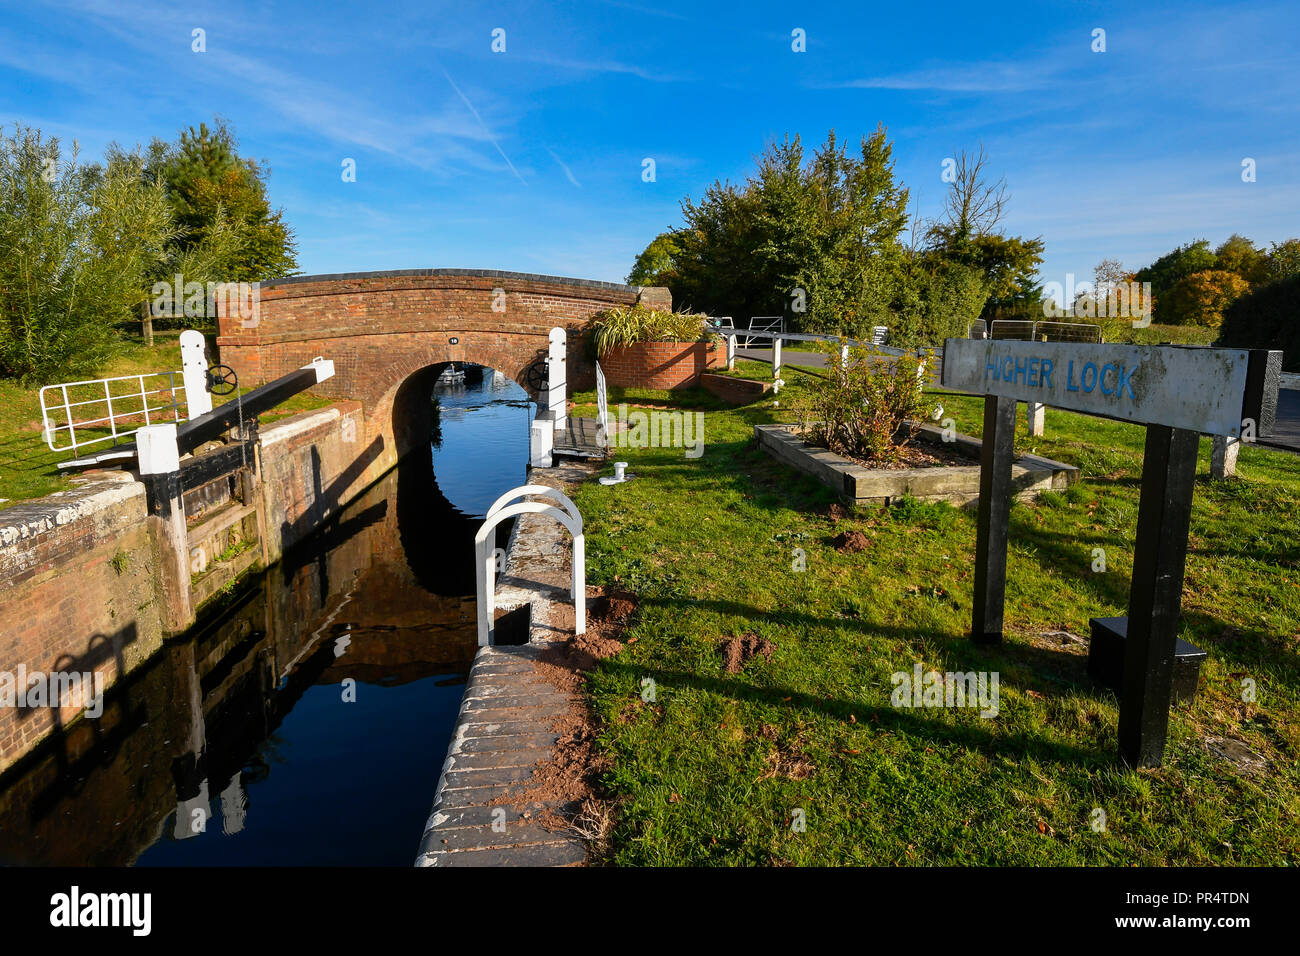 Uk Weather Higher Lock On The Bridgwater And Taunton Cnear Hedging In Somerset On A Day Of Sunshine And Clear Blue Skies